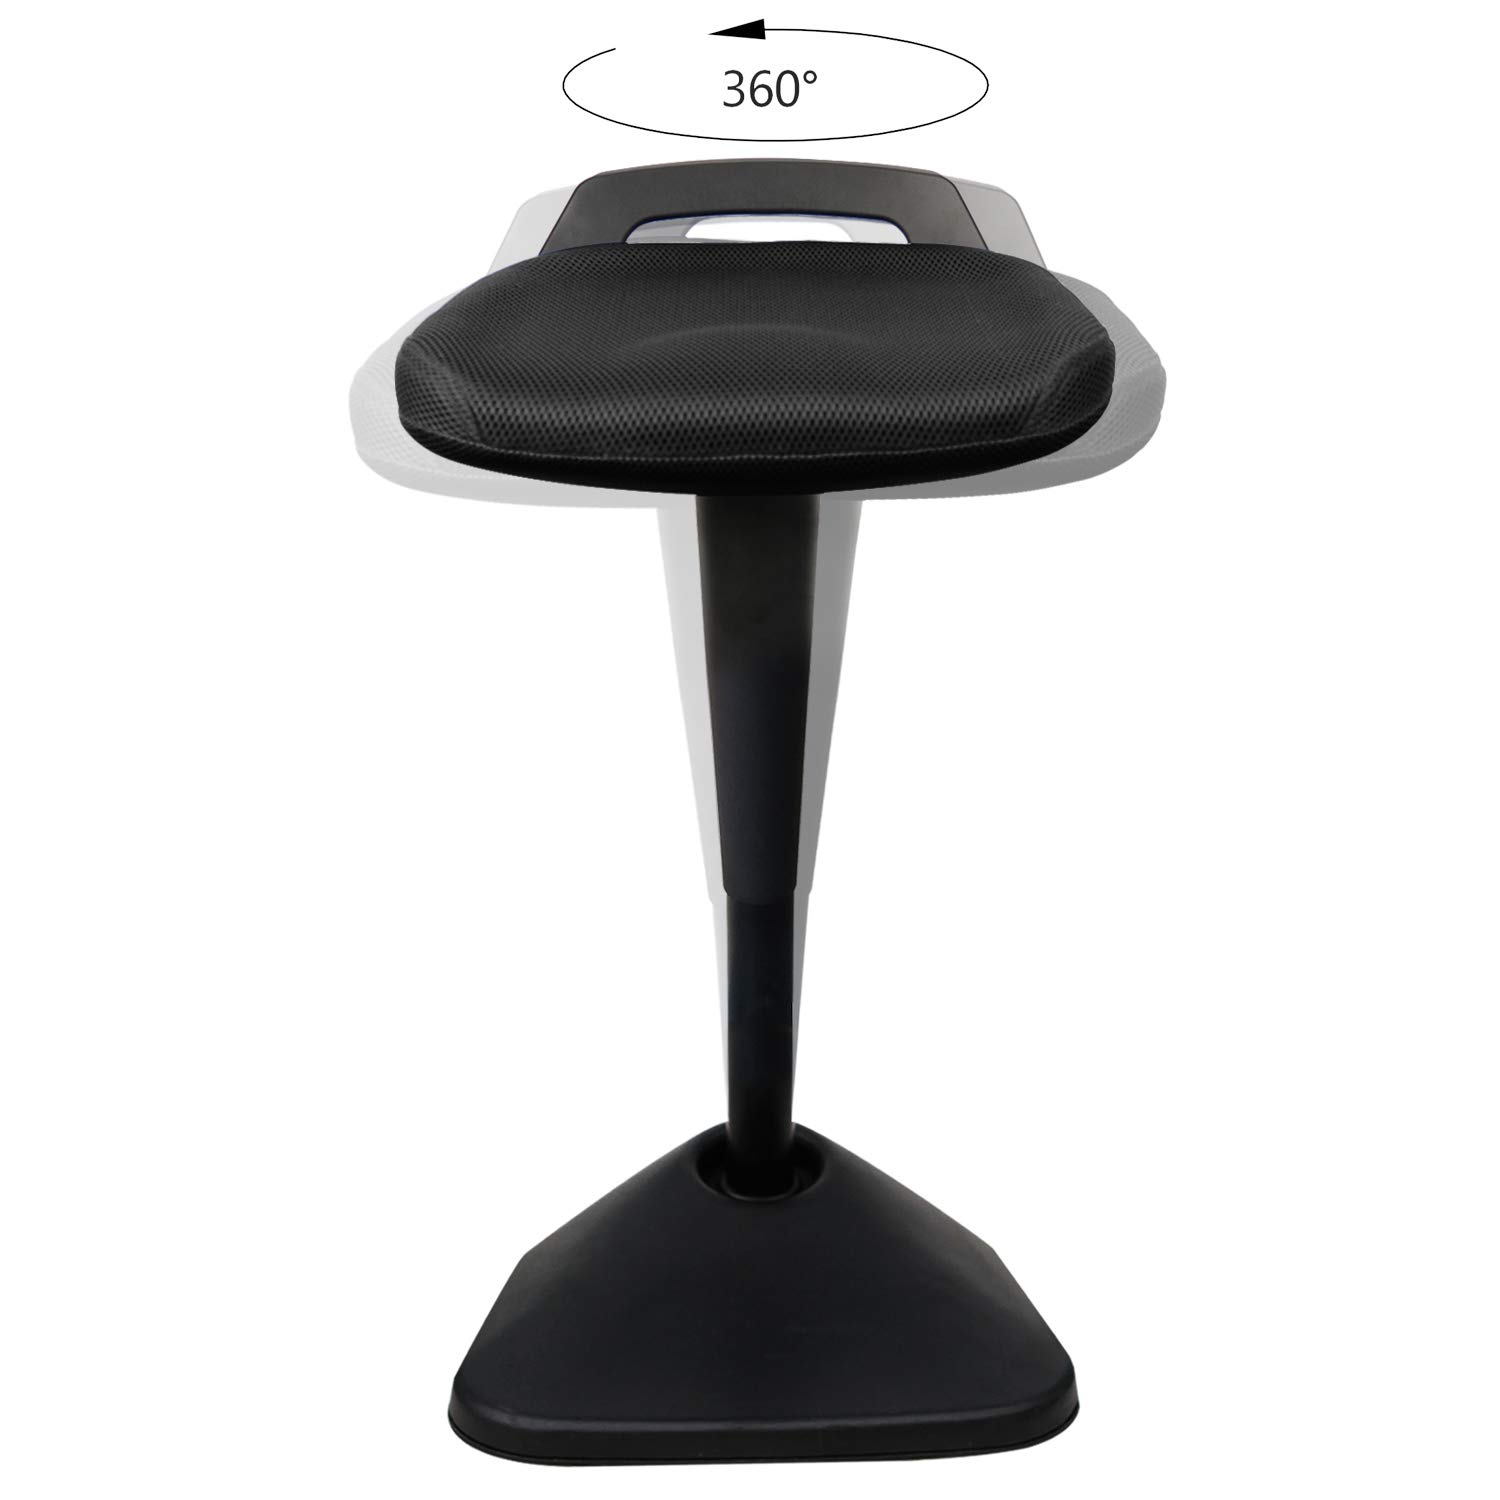 AIMEZO Sit Stand Desk Stool - 360° Swivel Seat Standing Desk Chair with Adjustable Height Active Sitting Balance Chair by AIMEZO (Image #5)